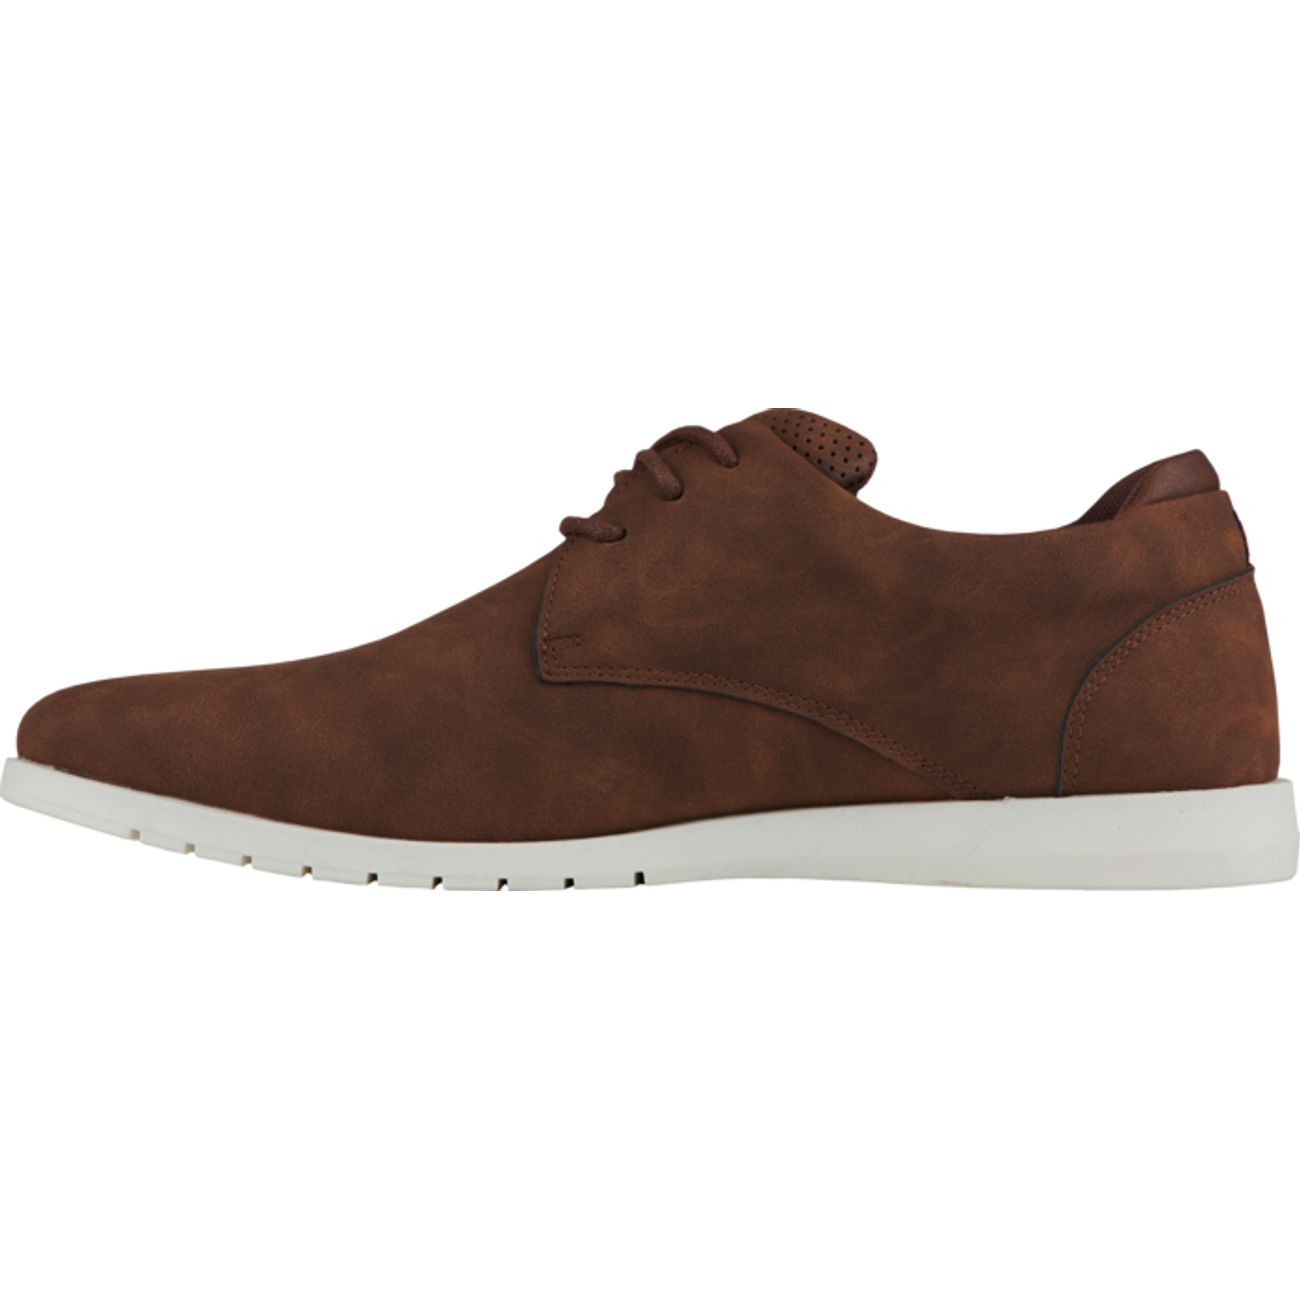 CHAUSSURES BASSES Loisirs homme TEDDY SMITH NEW TUNDRA